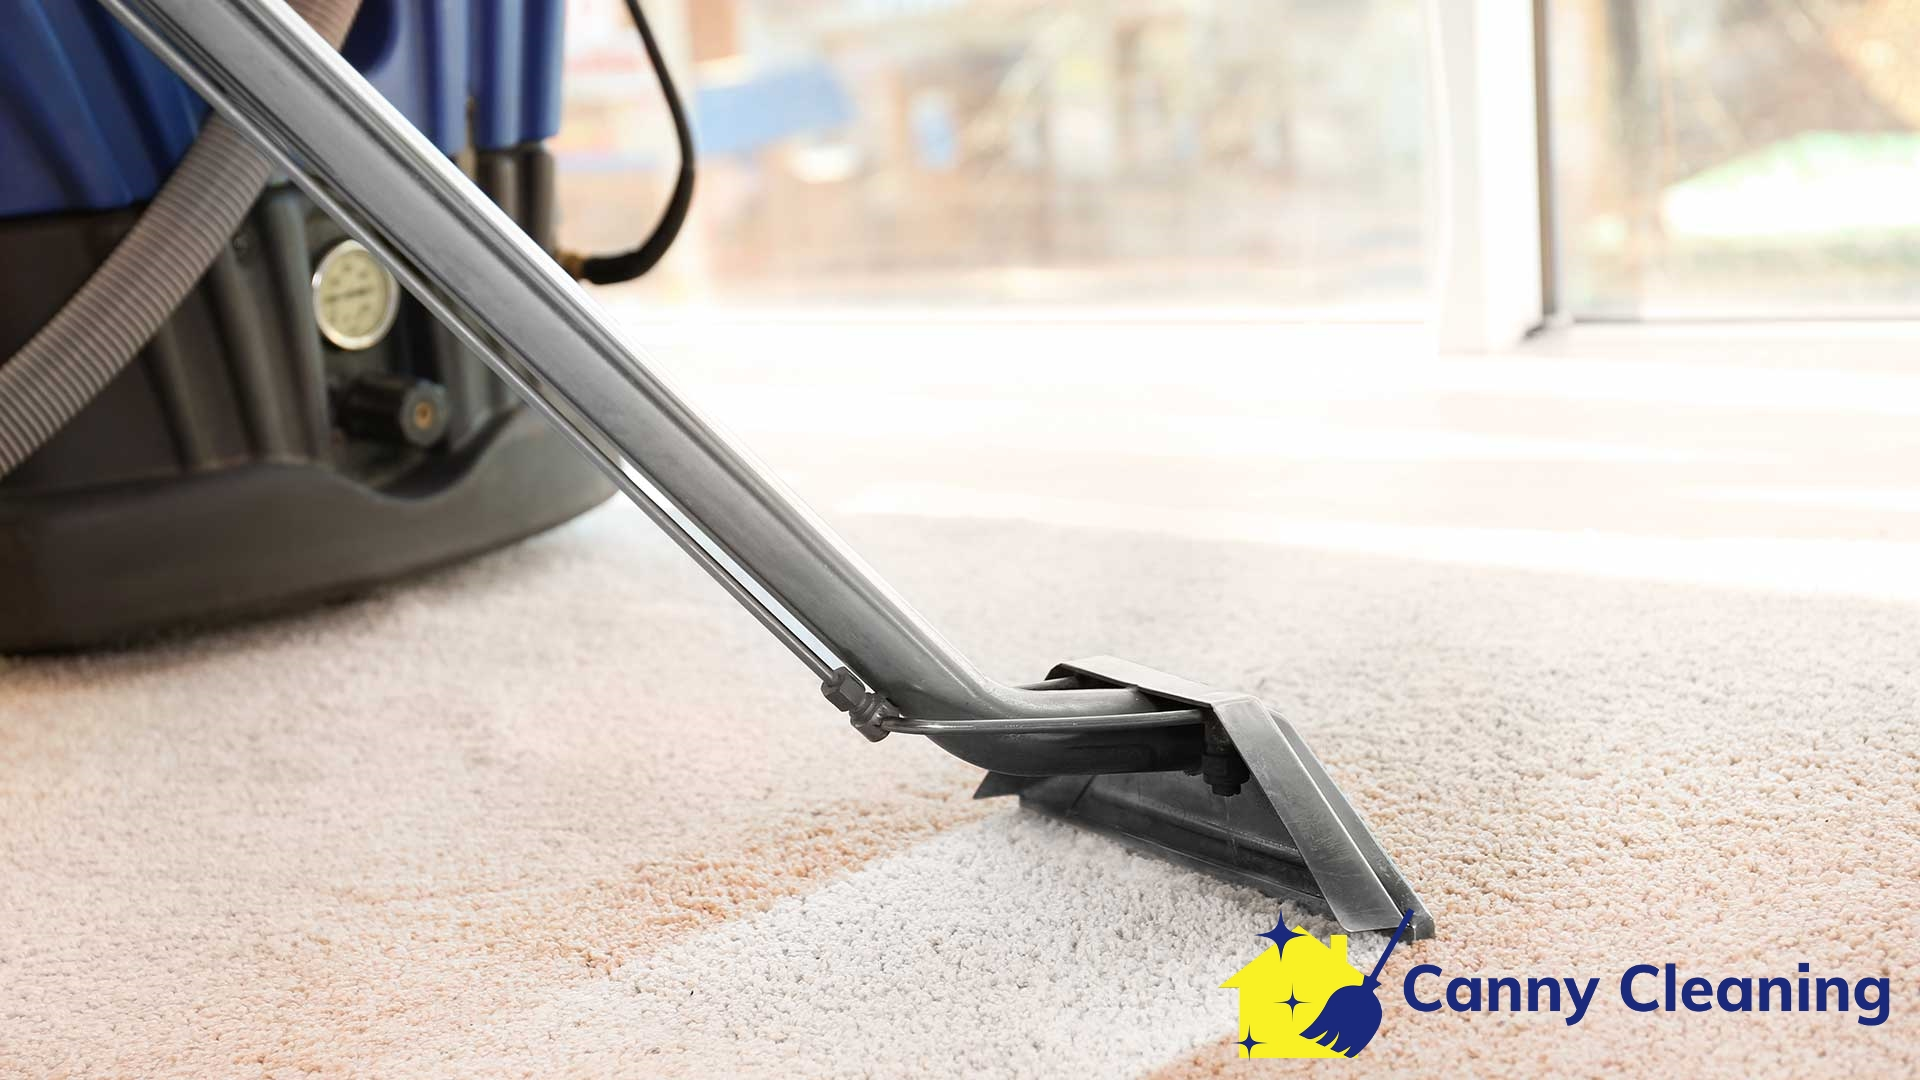 carpet cleaner canny cleaning services singapore